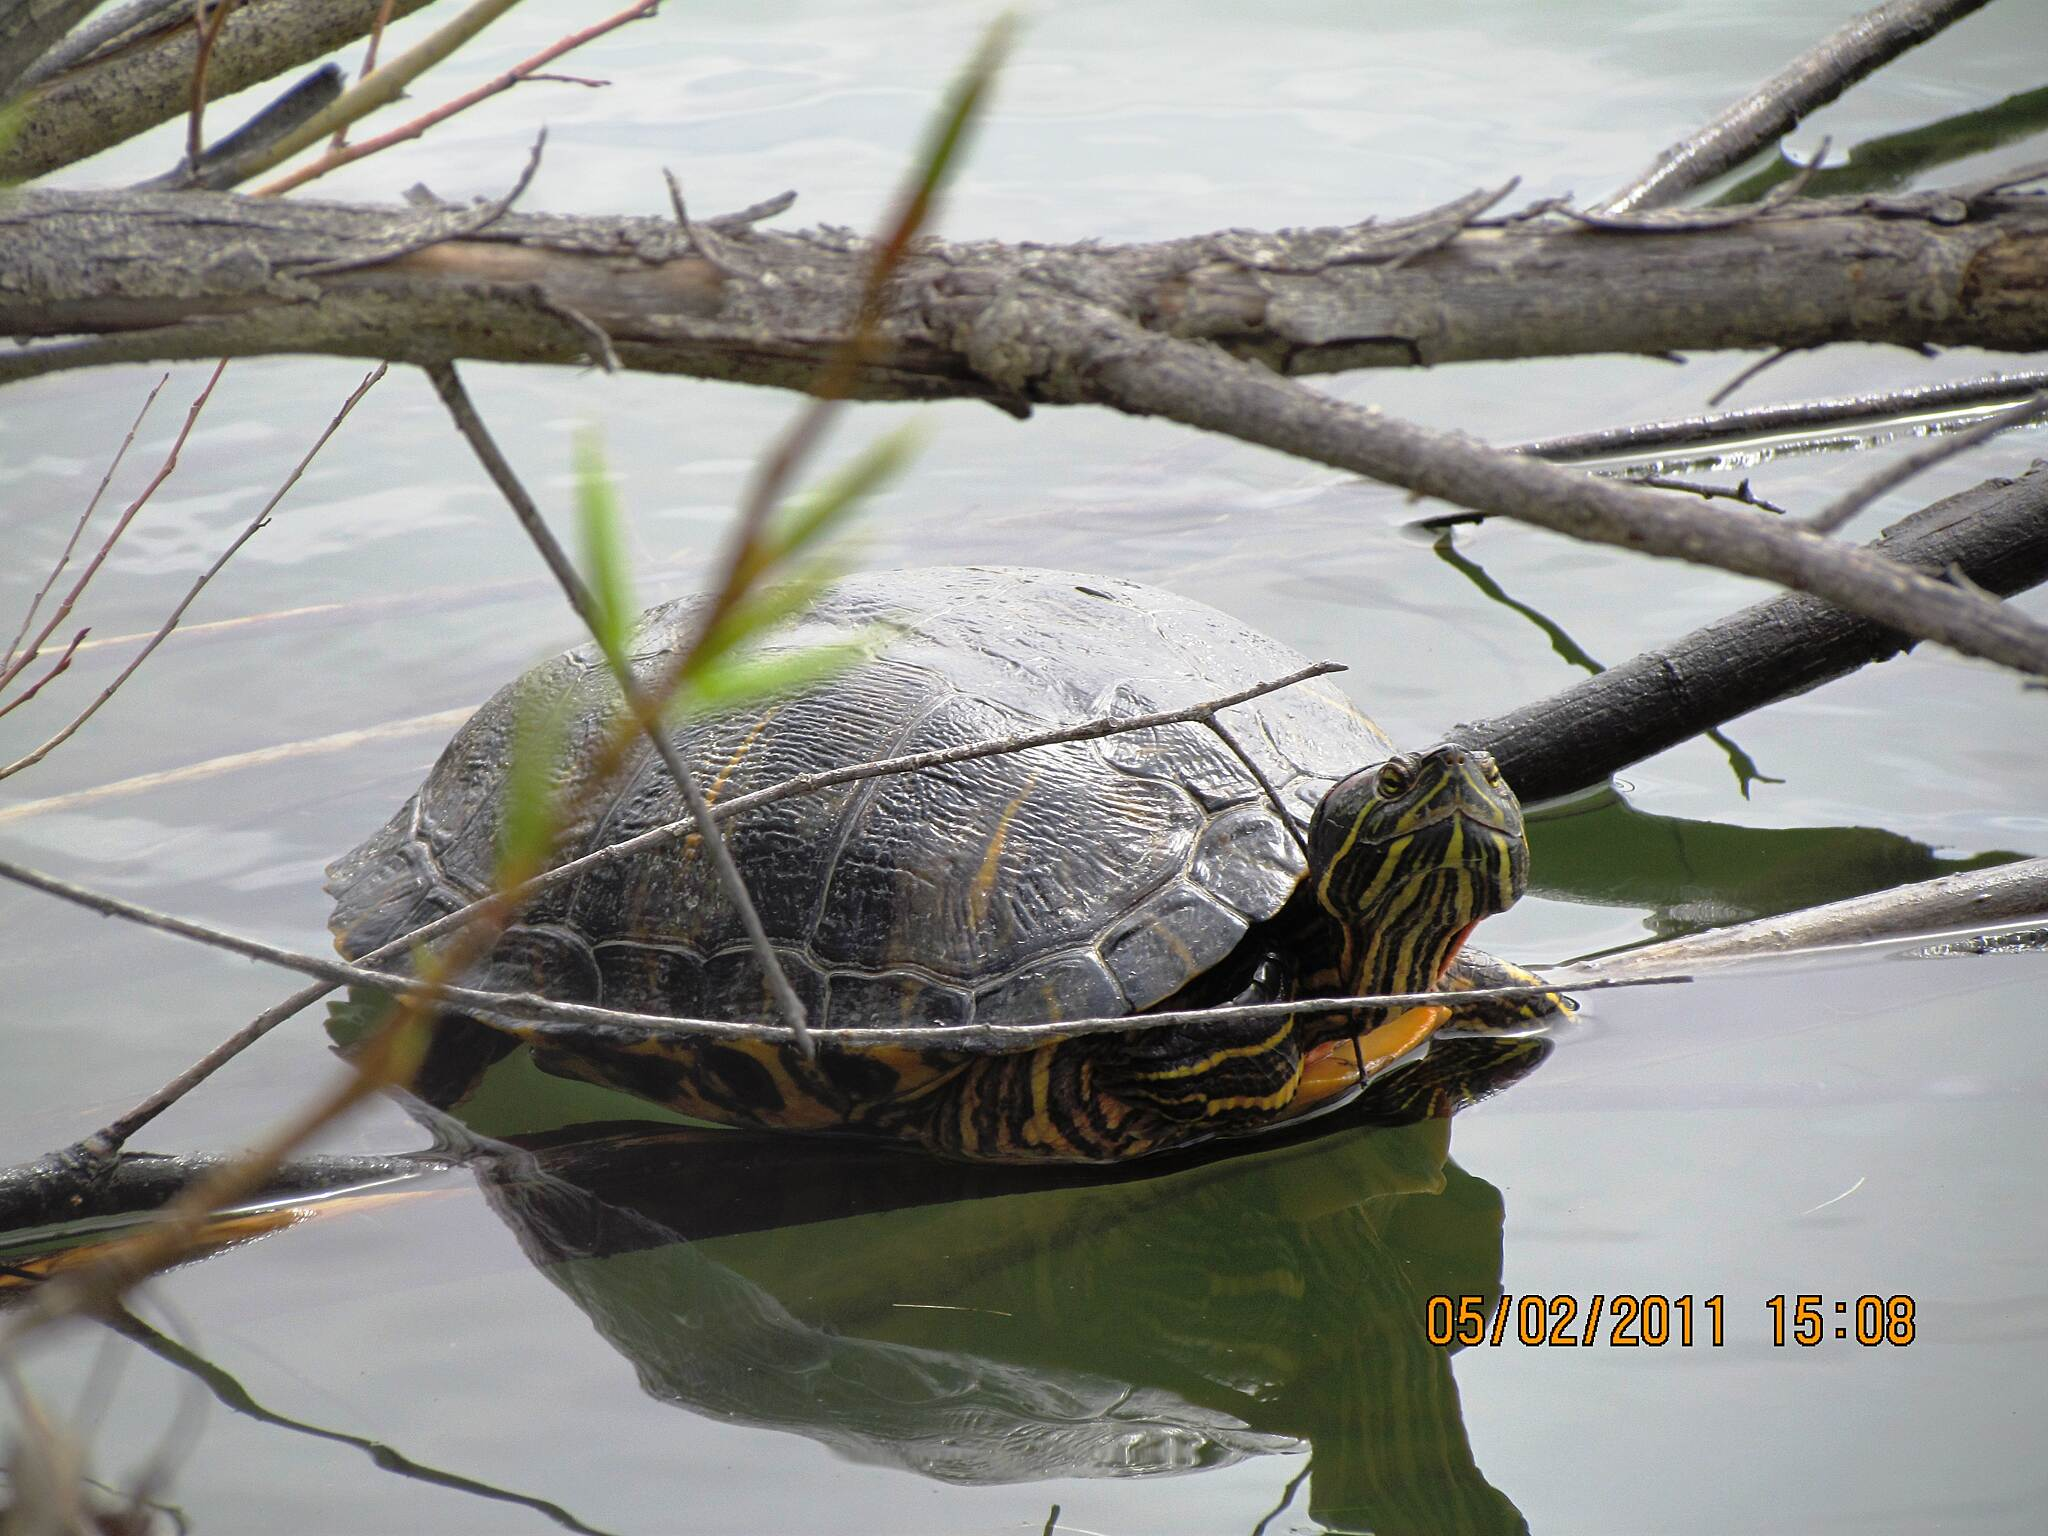 Boise River Greenbelt Turtle Boise River Greenbelt Wildlife - Turtle